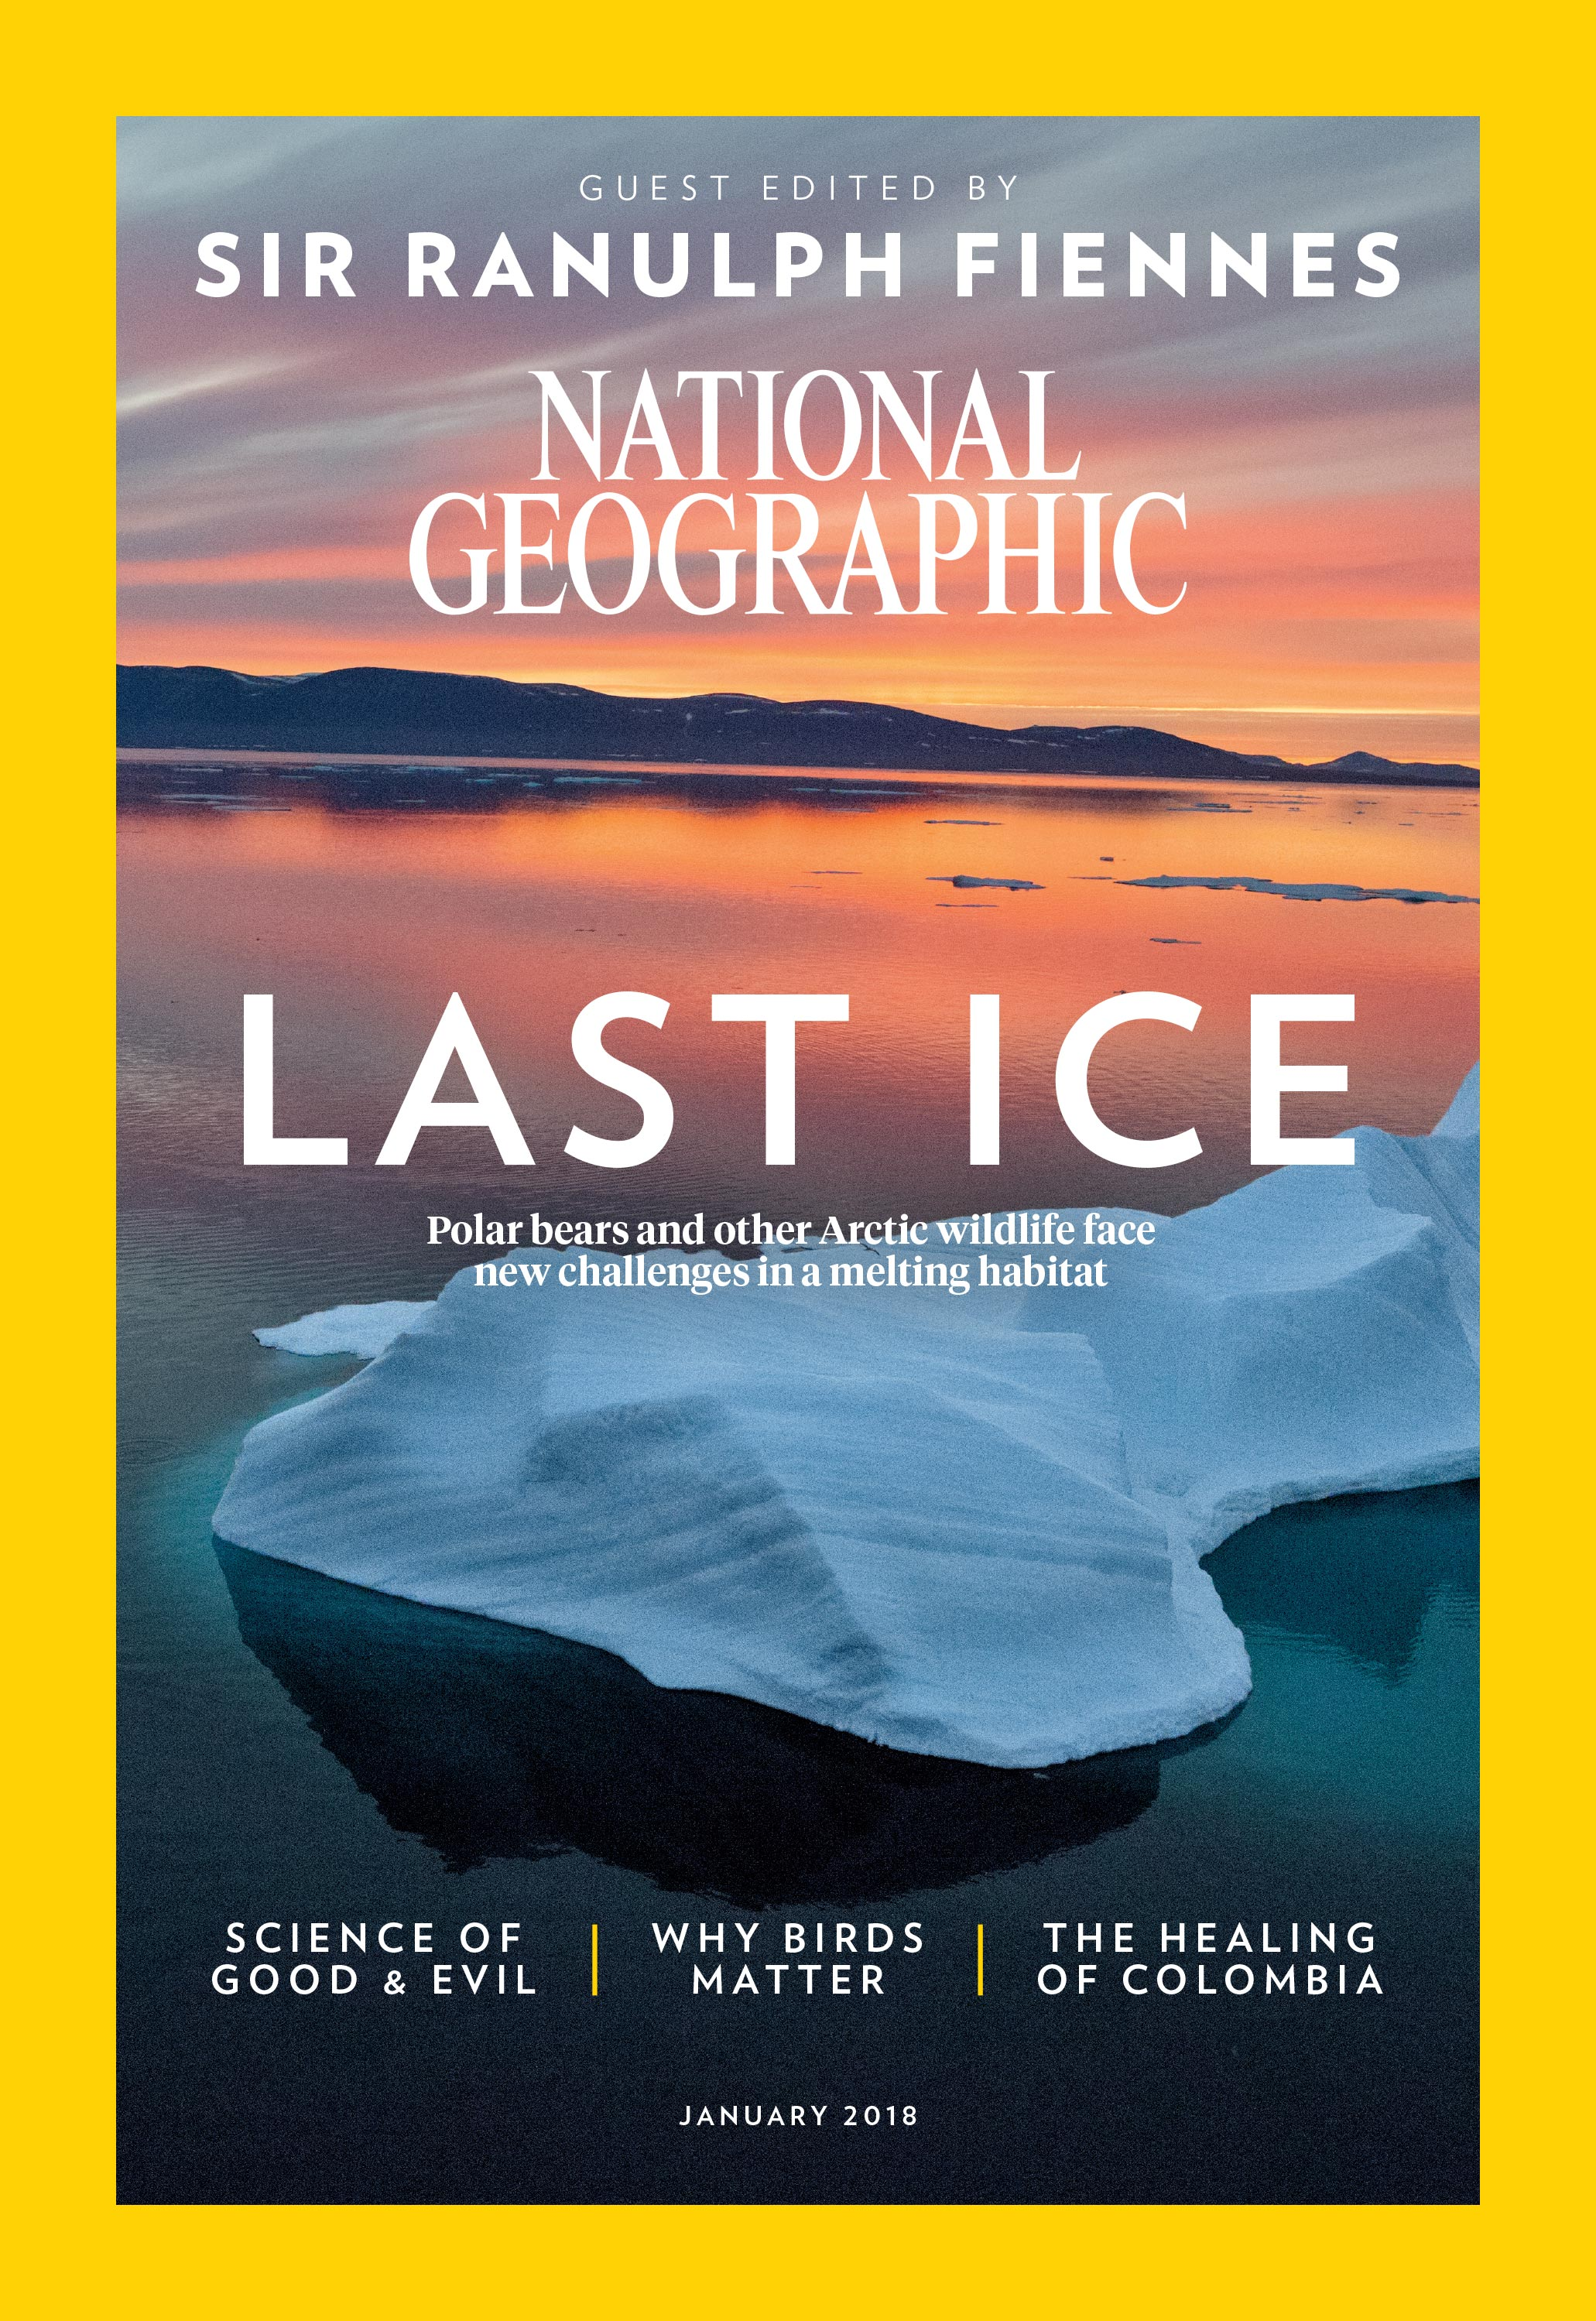 Sir Ranulph's cover (National Geographic/PA)